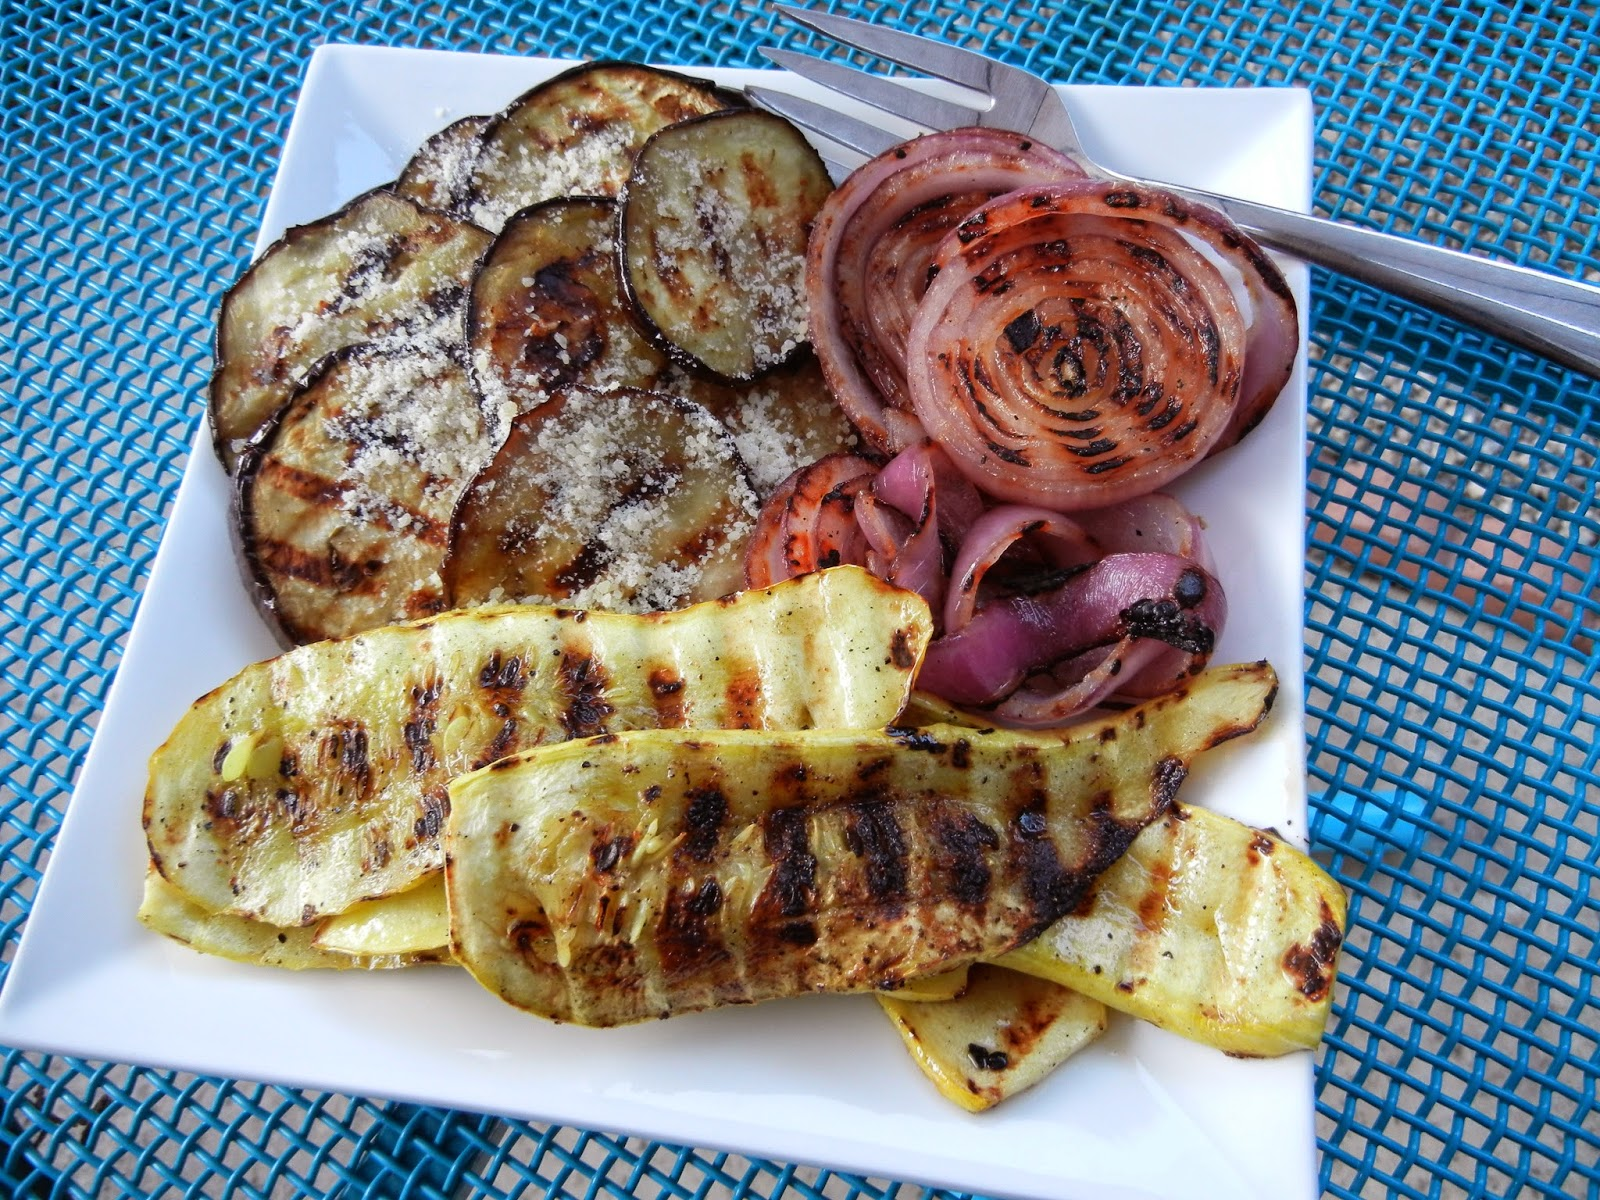 Grilled%2BVeggies Weight Loss Recipes Post Weight Loss Surgery Menus: A day in my pouch